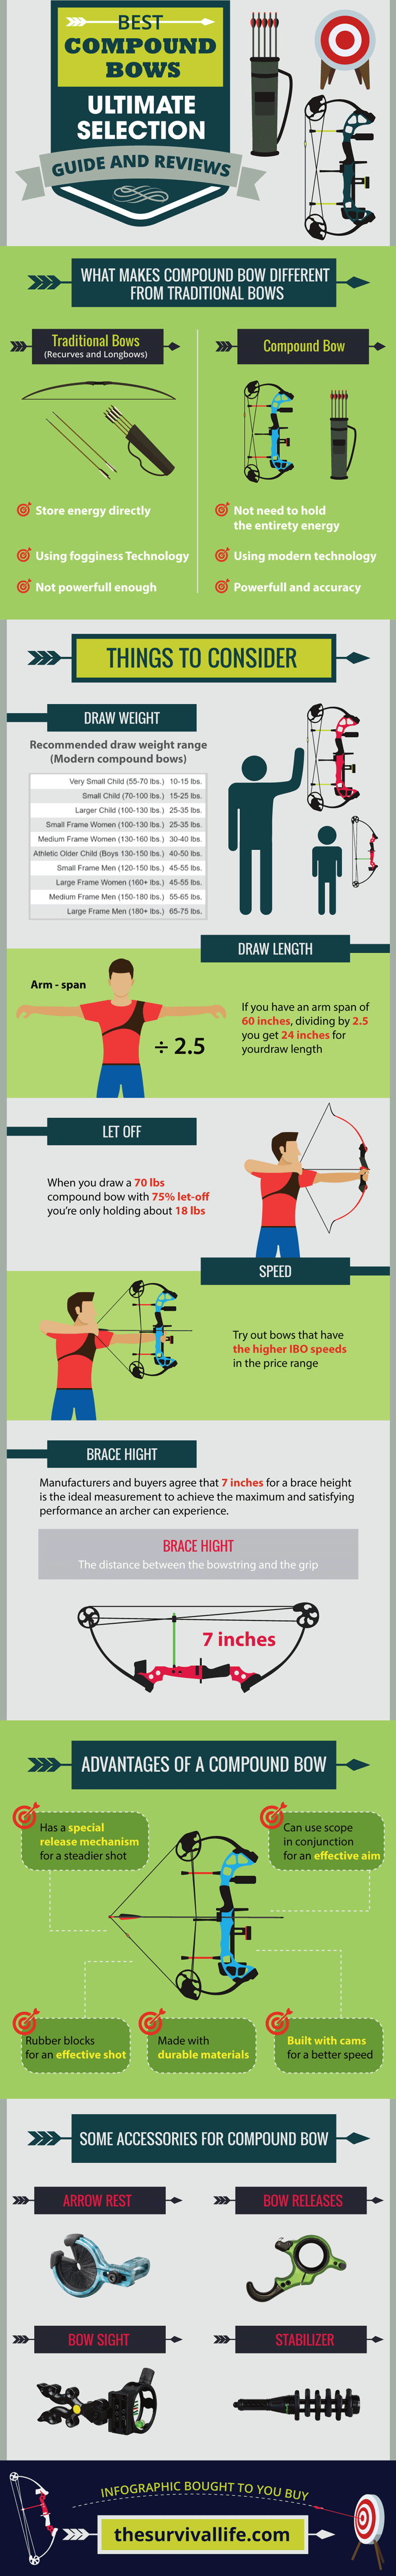 Best-Compound-Bow-infographic